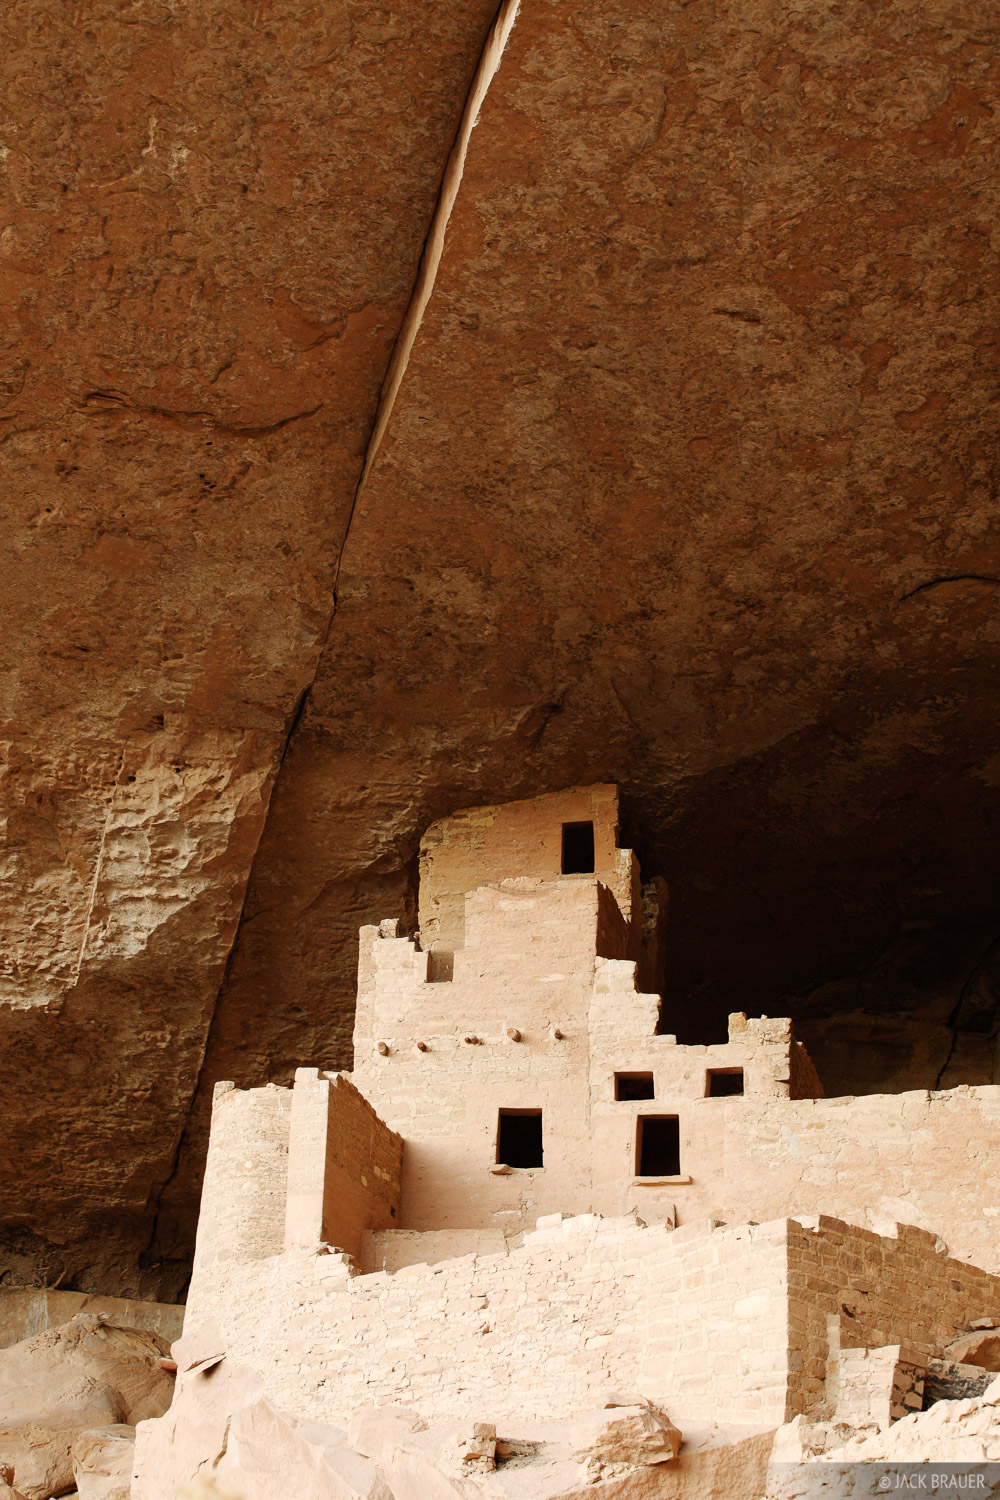 A building at the Cliff Palace ruins of Mesa Verde.